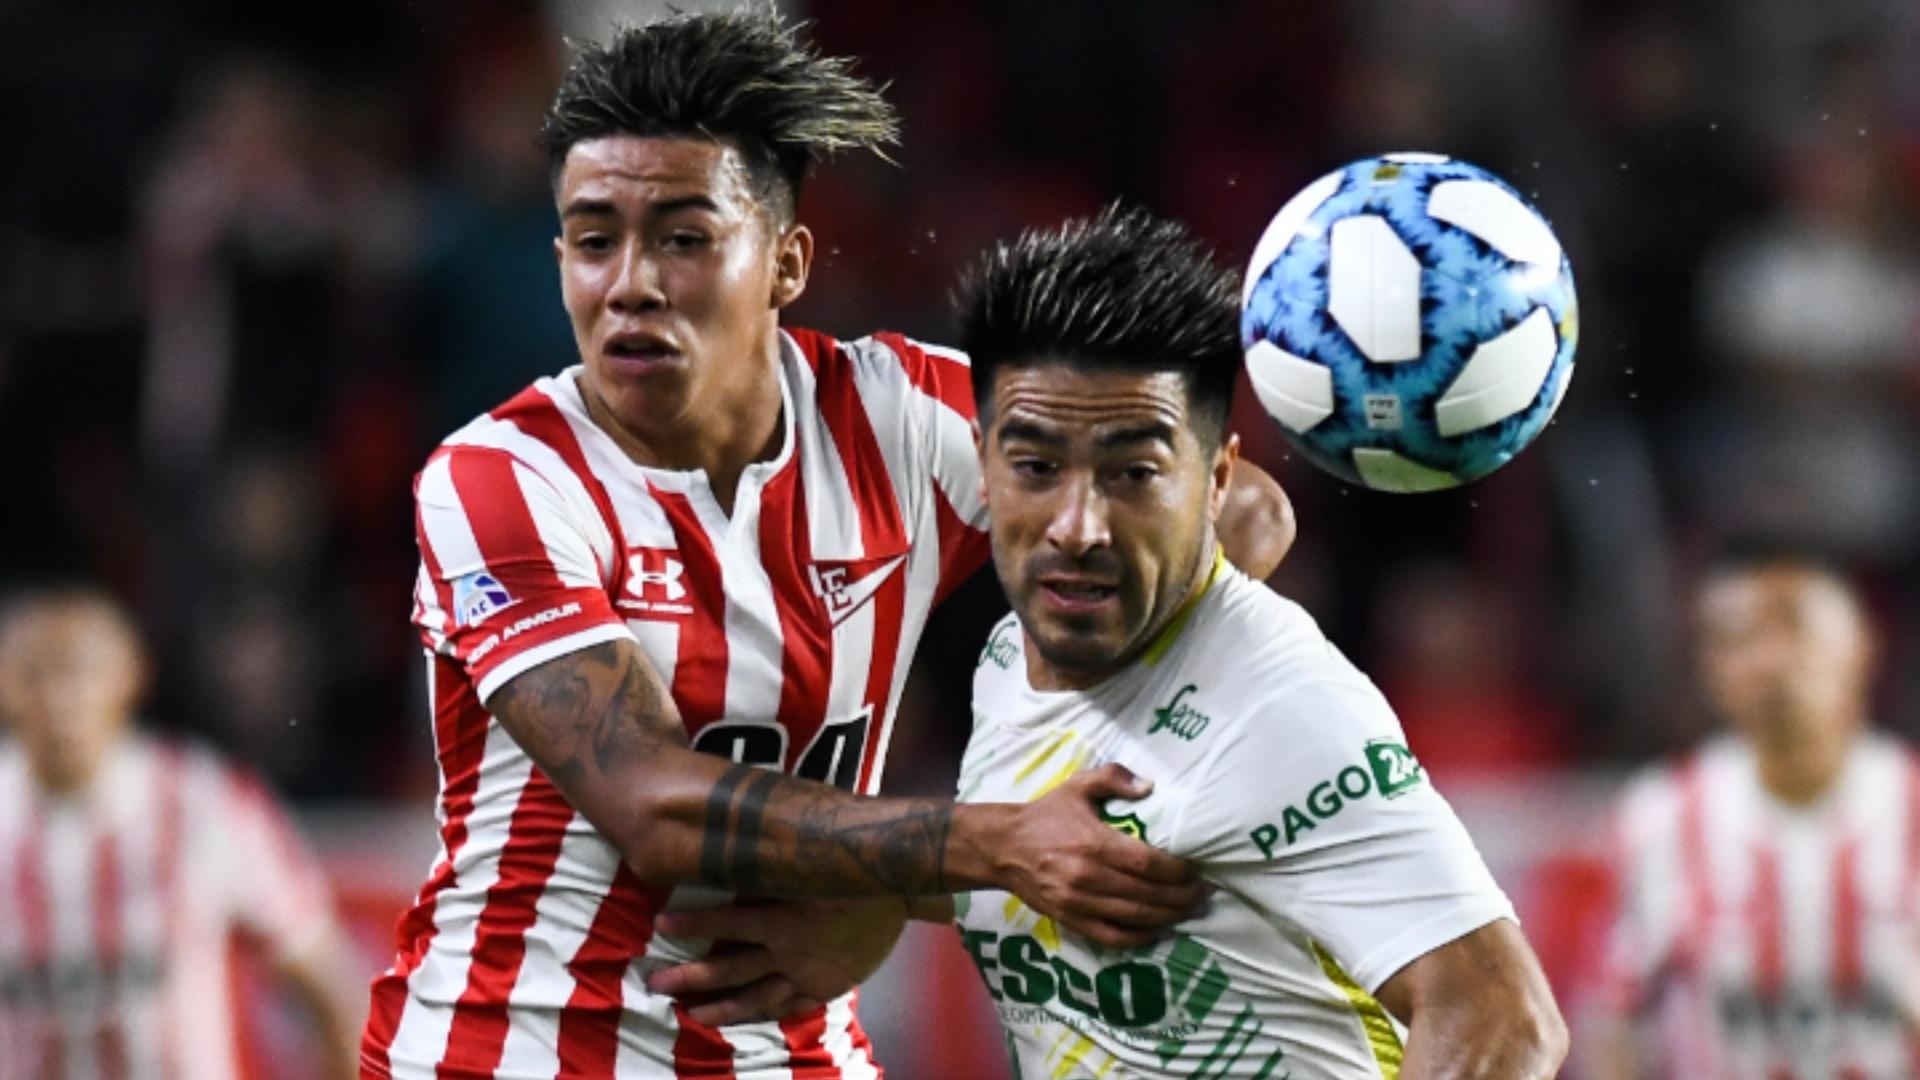 Dario Sarmiento: Backed by Veron, but why are Man City interested in Estudiantes teenager?